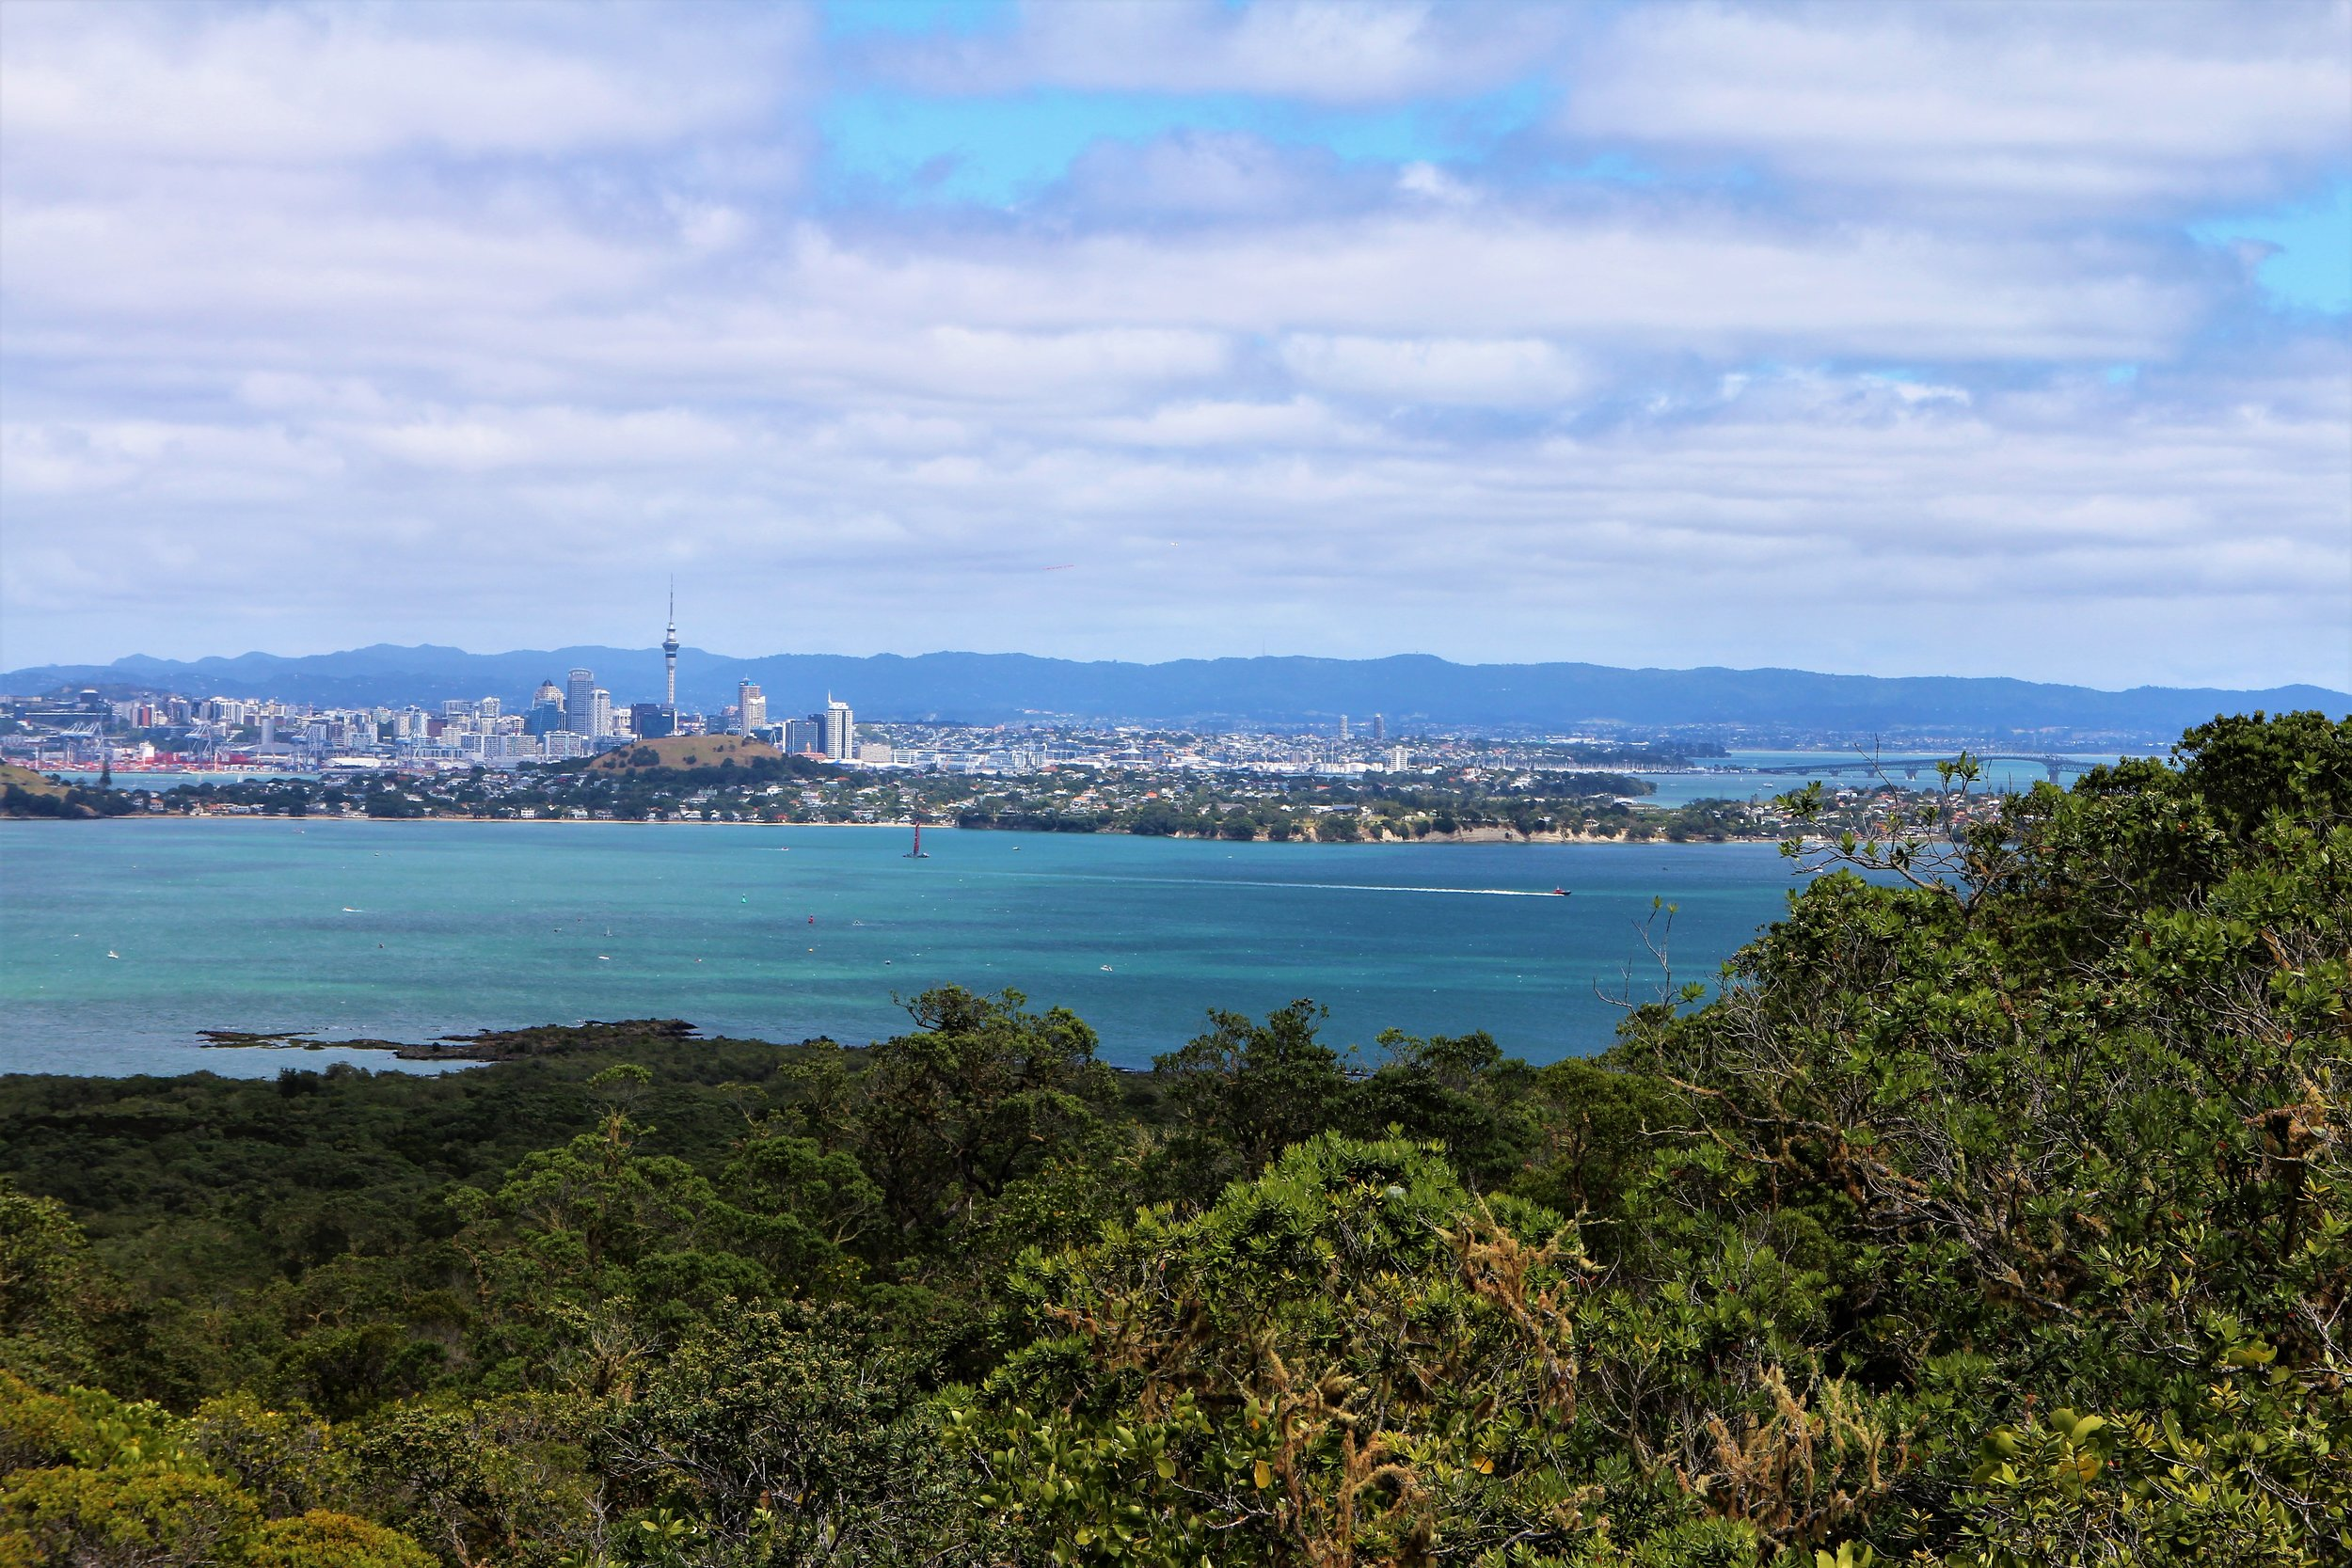 View of Auckland from Rangitoto Volcano, New Zealand